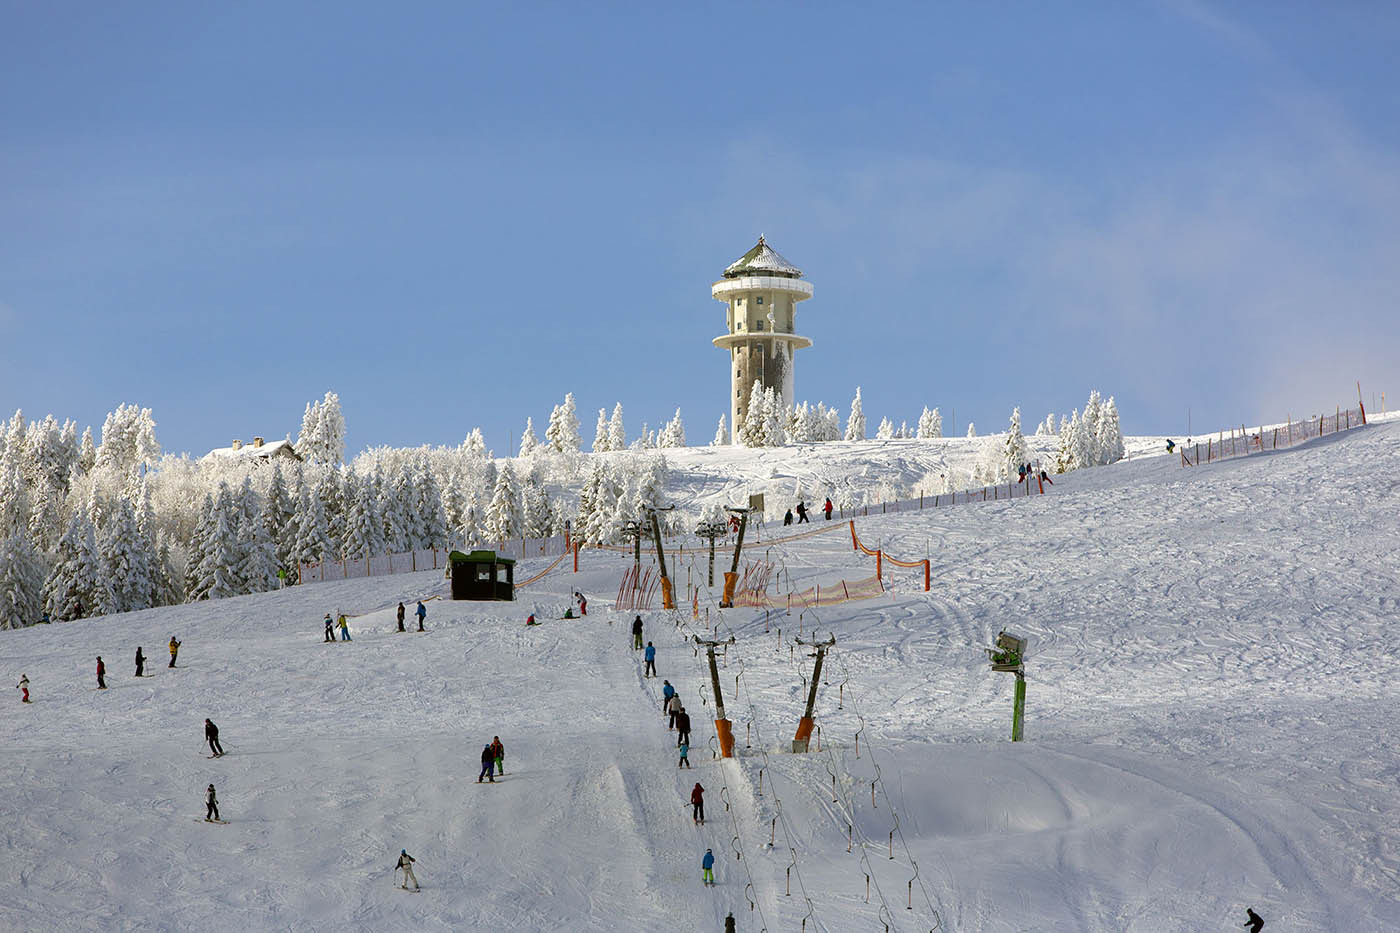 Feldberg ski area, Germany